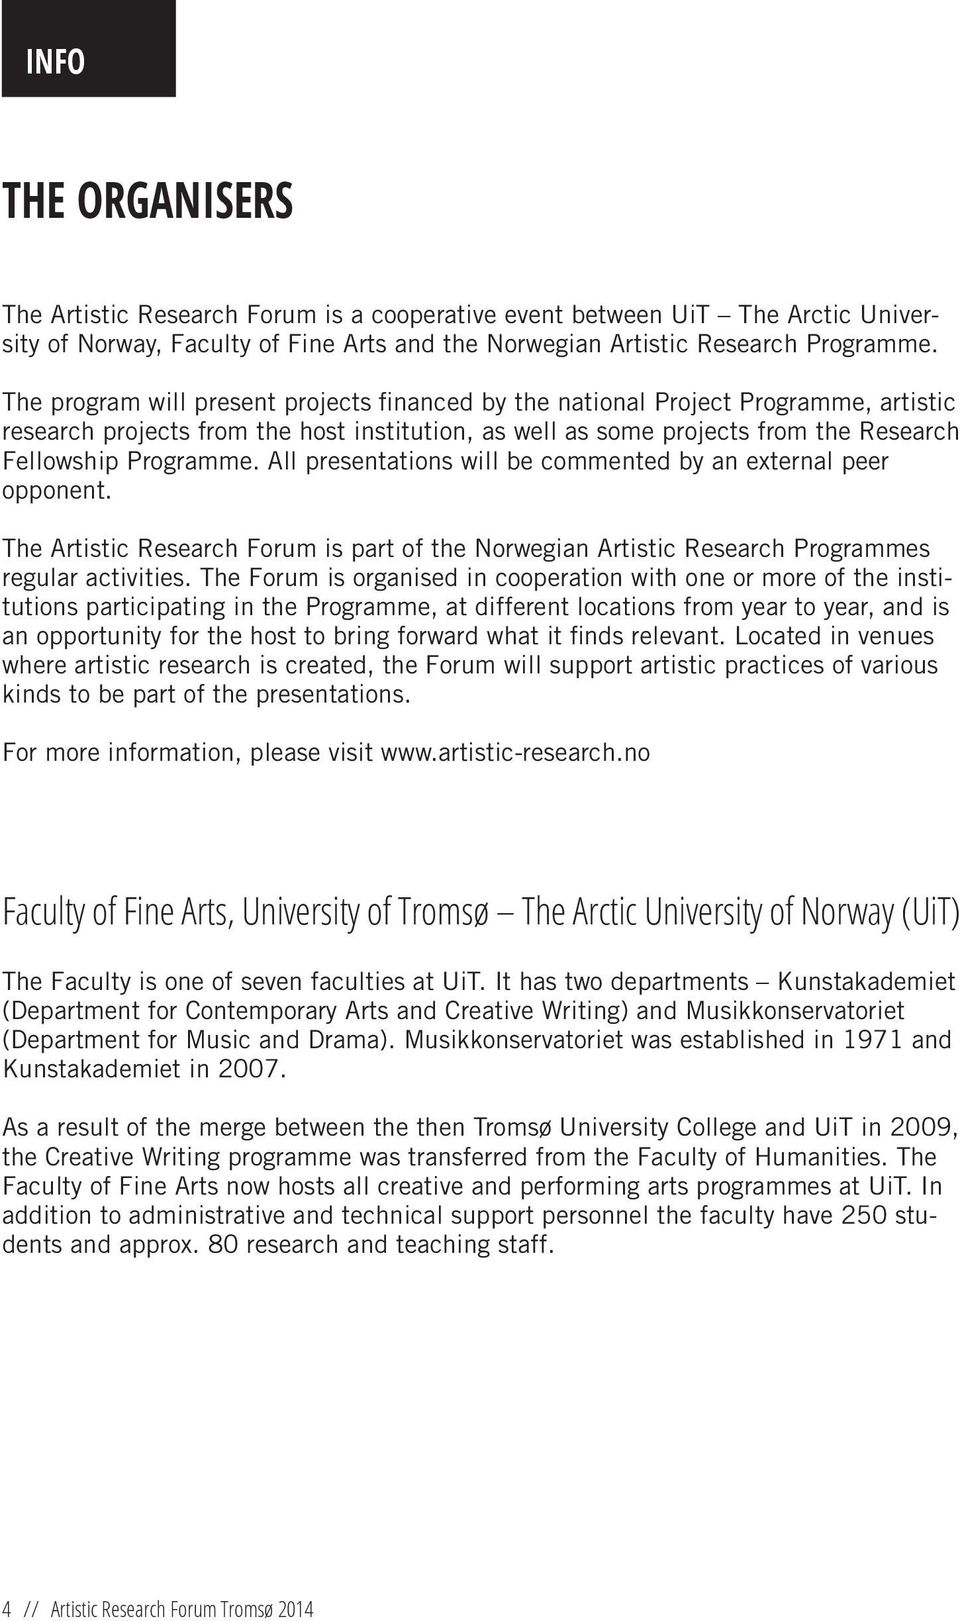 All presentations will be commented by an external peer opponent. The Artistic Research Forum is part of the Norwegian Artistic Research Programmes regular activities.